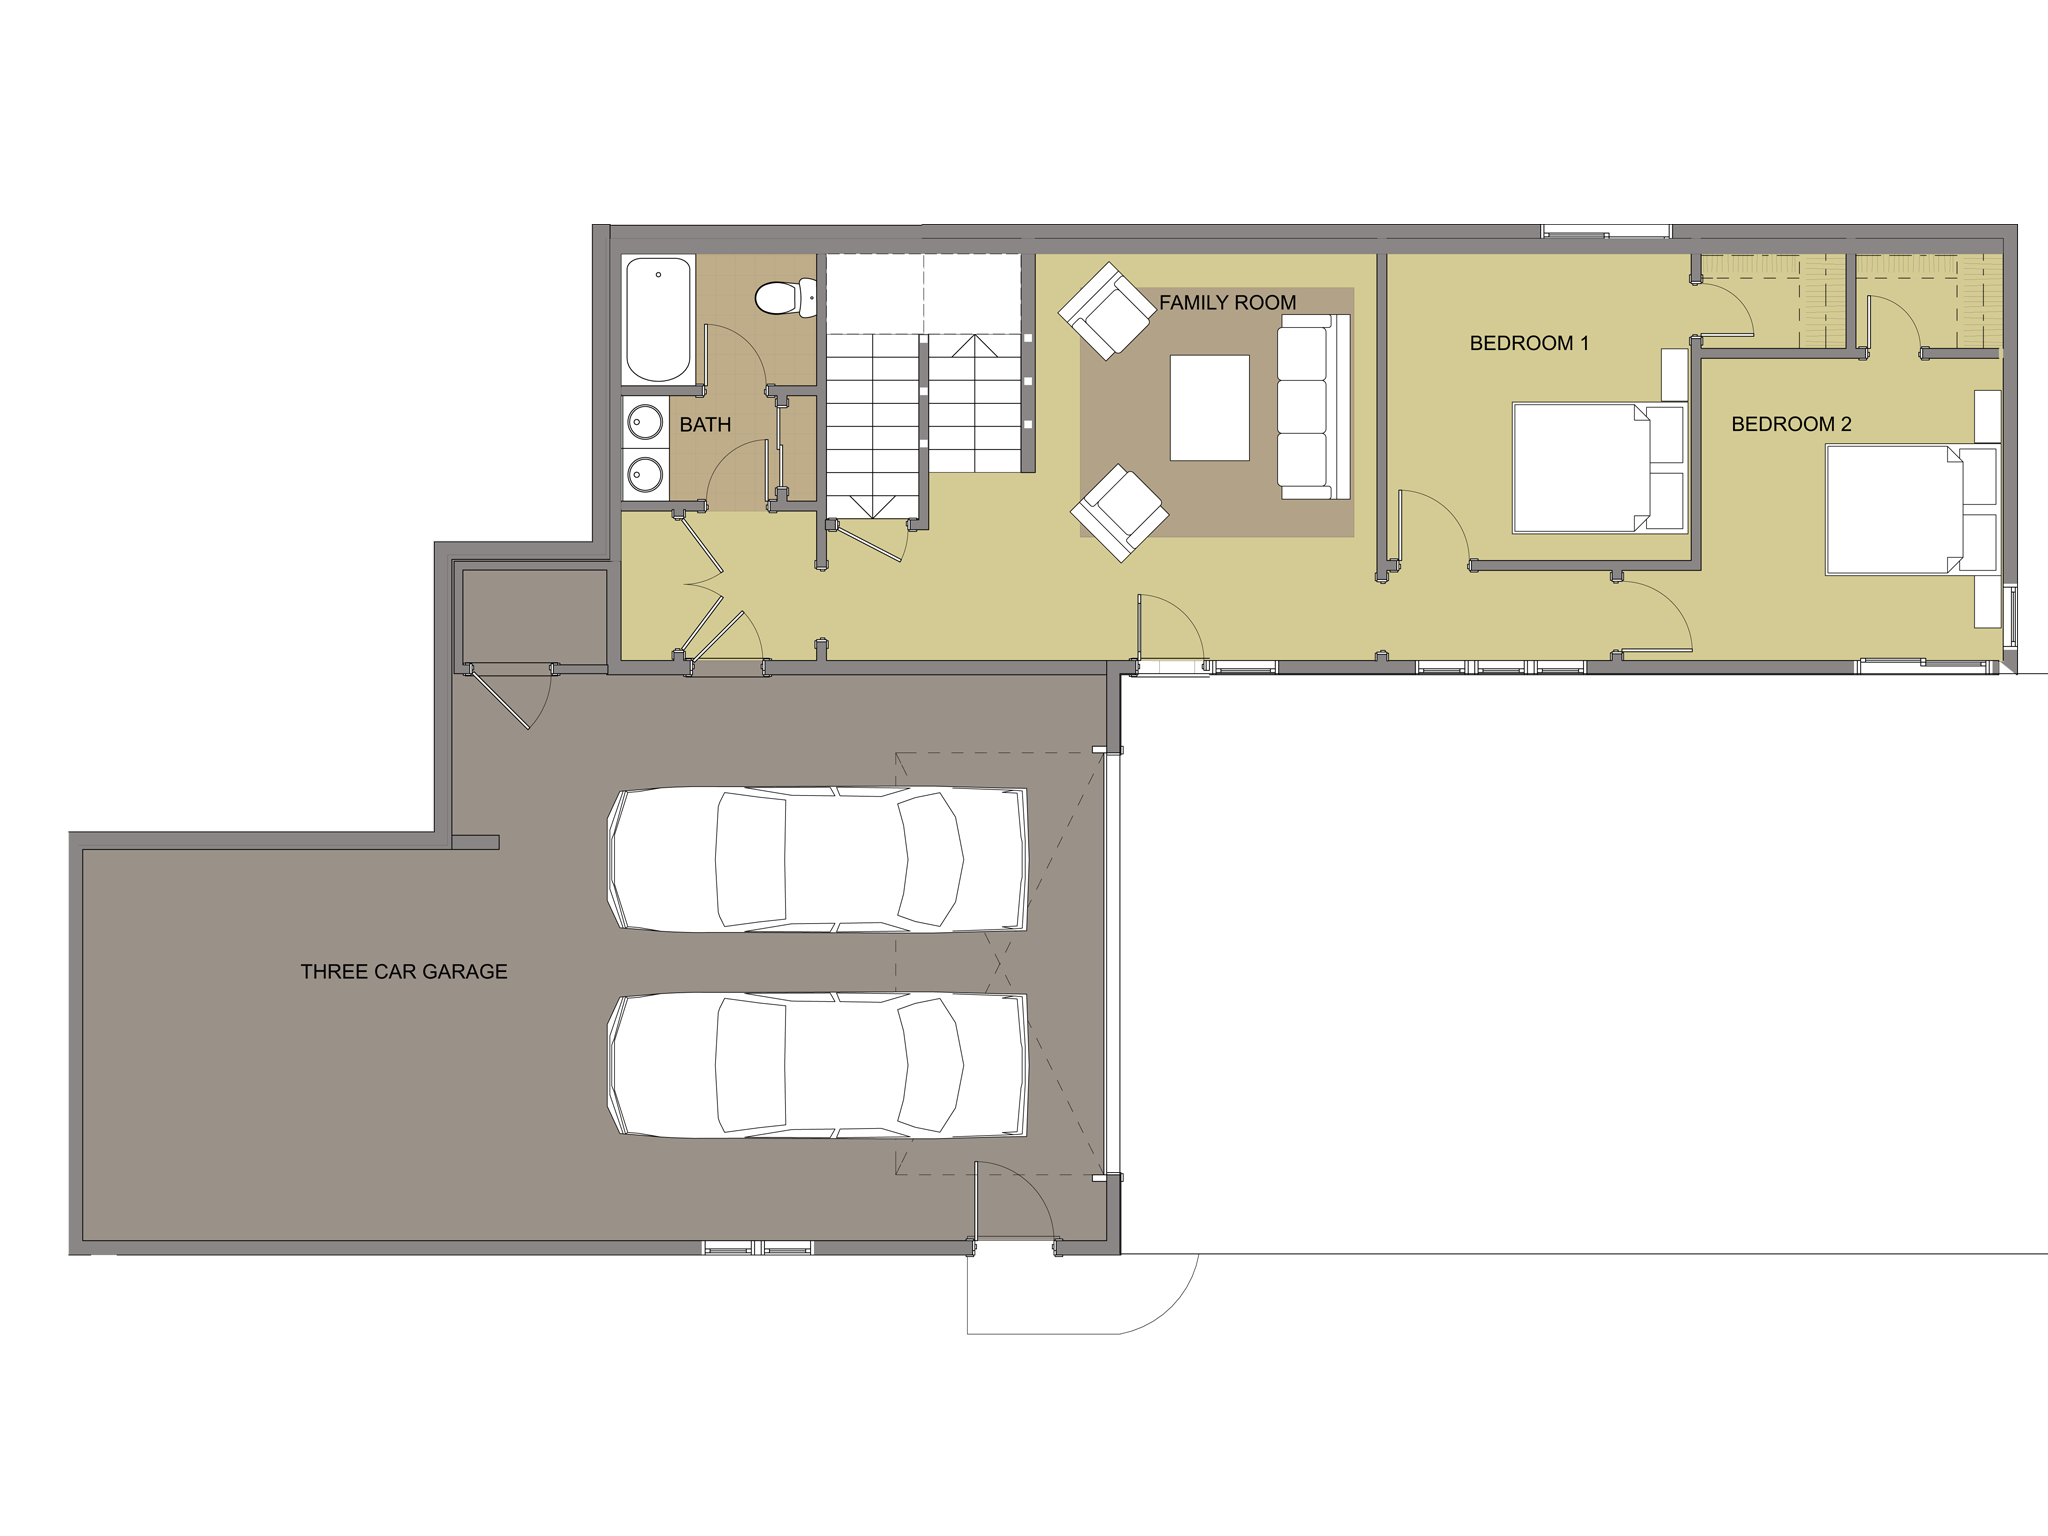 Daylight Basement Floor Plans 301 Moved Permanently